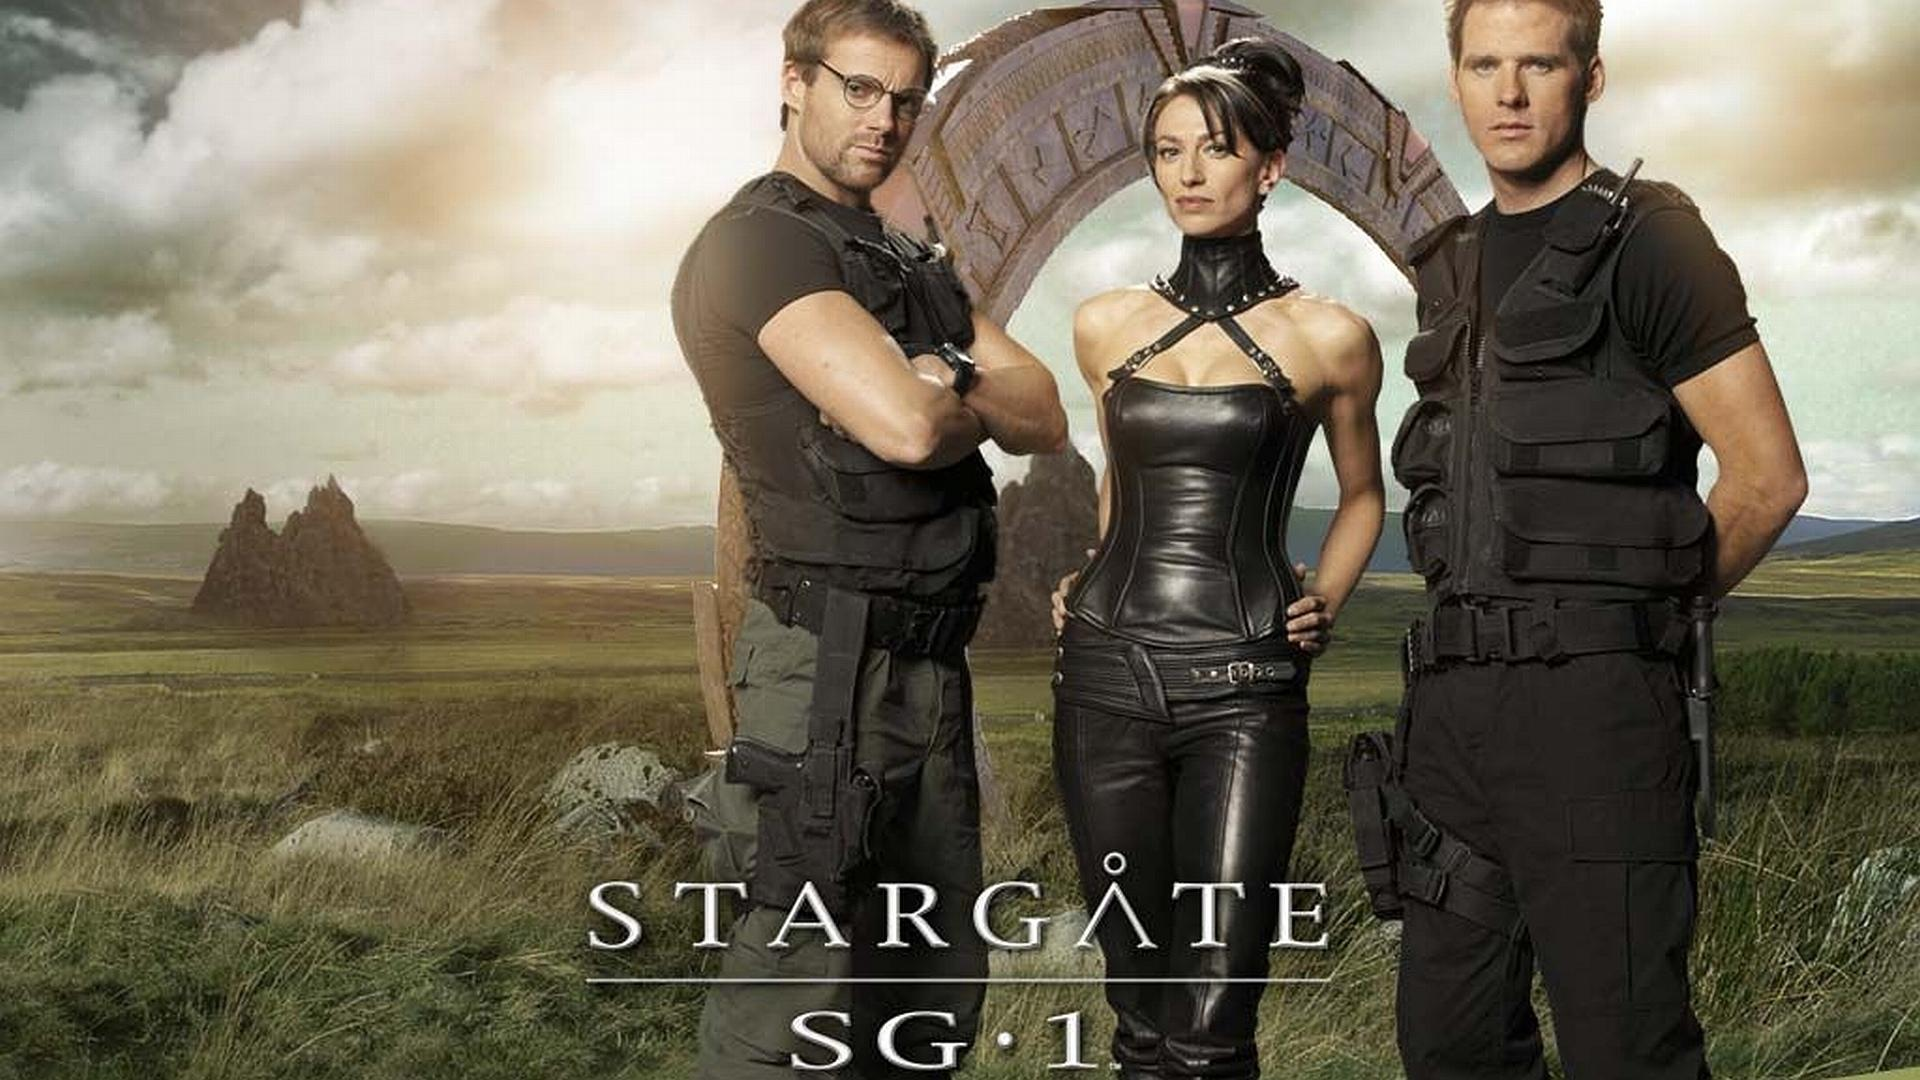 Stargate SG-1 TV show High Quality HD Wallpapers - All HD